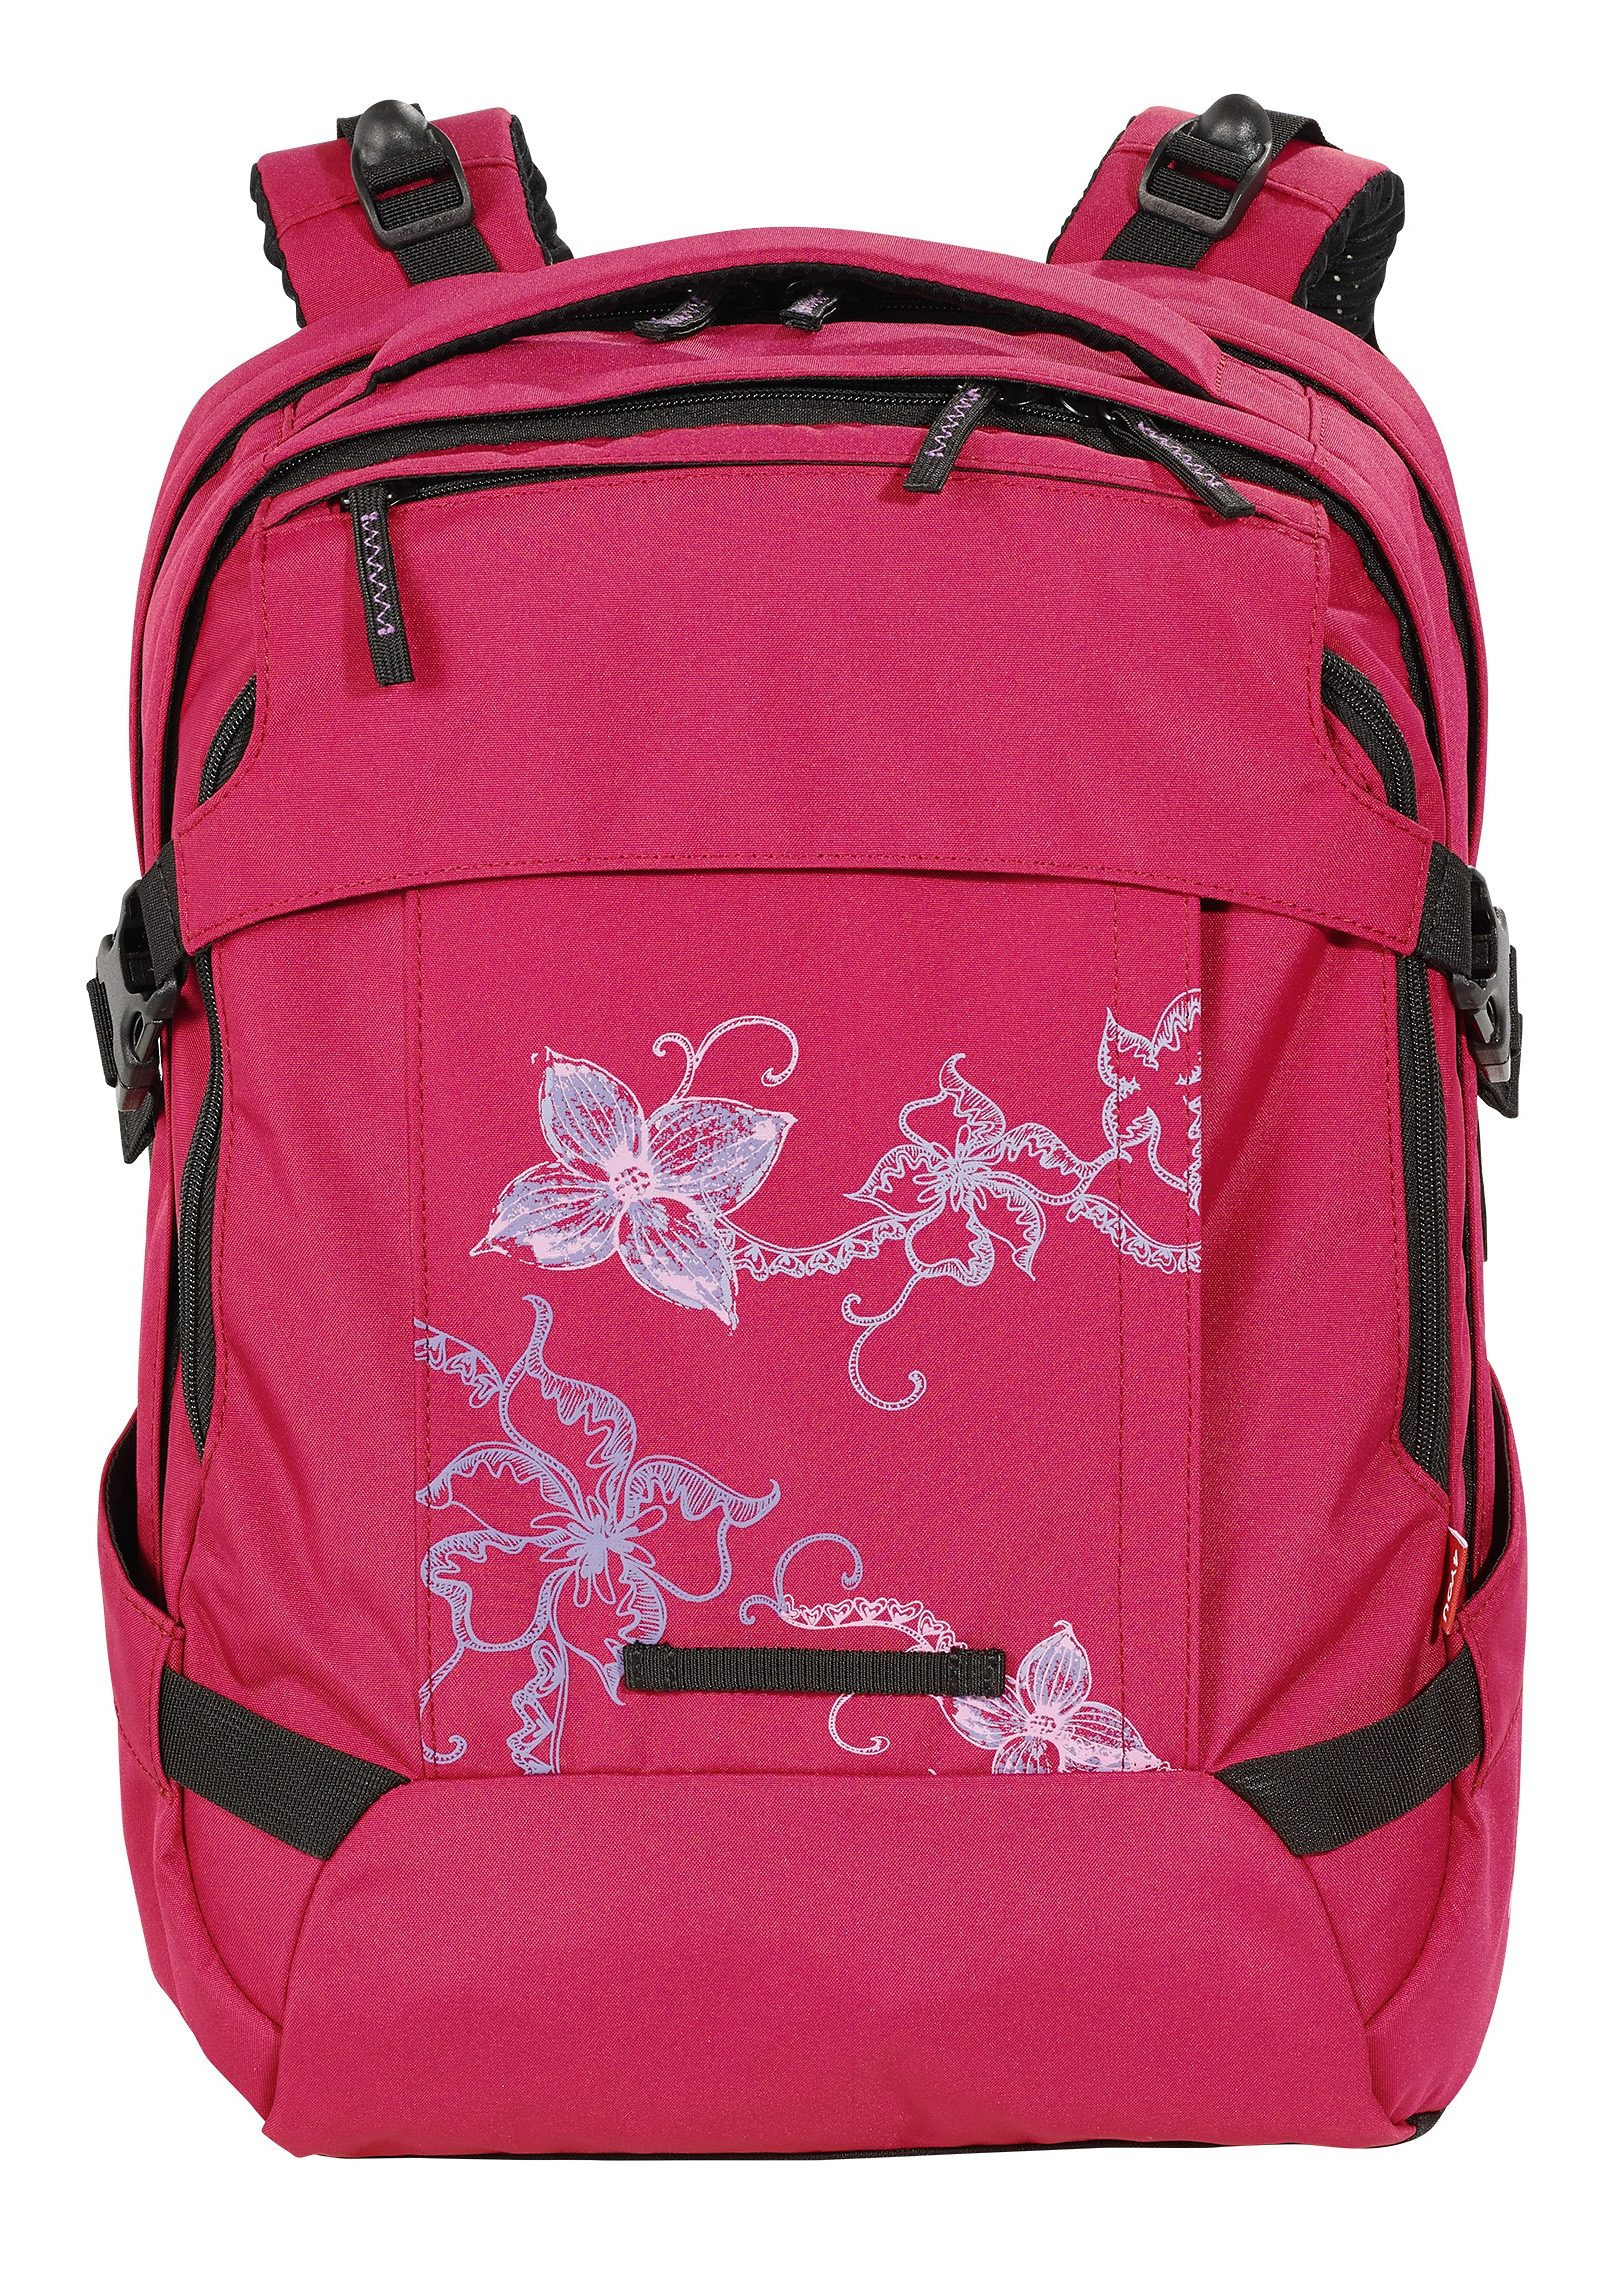 4YOU Schulrucksack, »Tight Fit - Flower Lace«